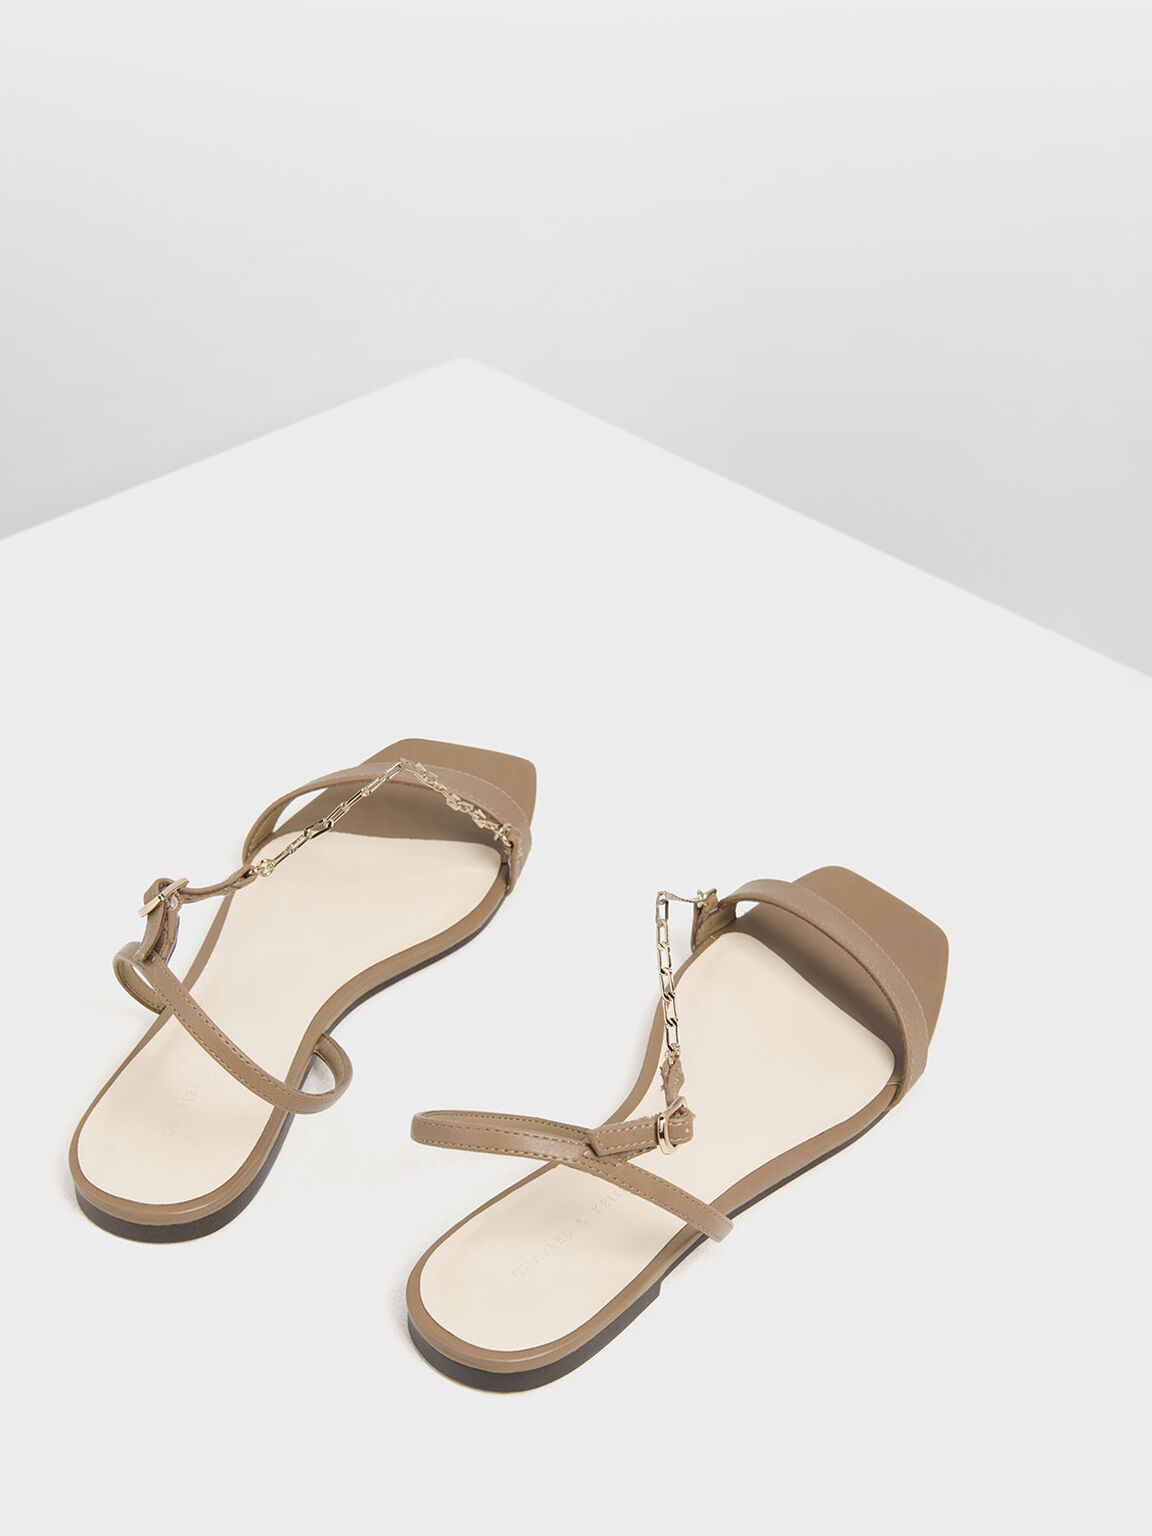 Chain Strap Sandals, Brown, hi-res